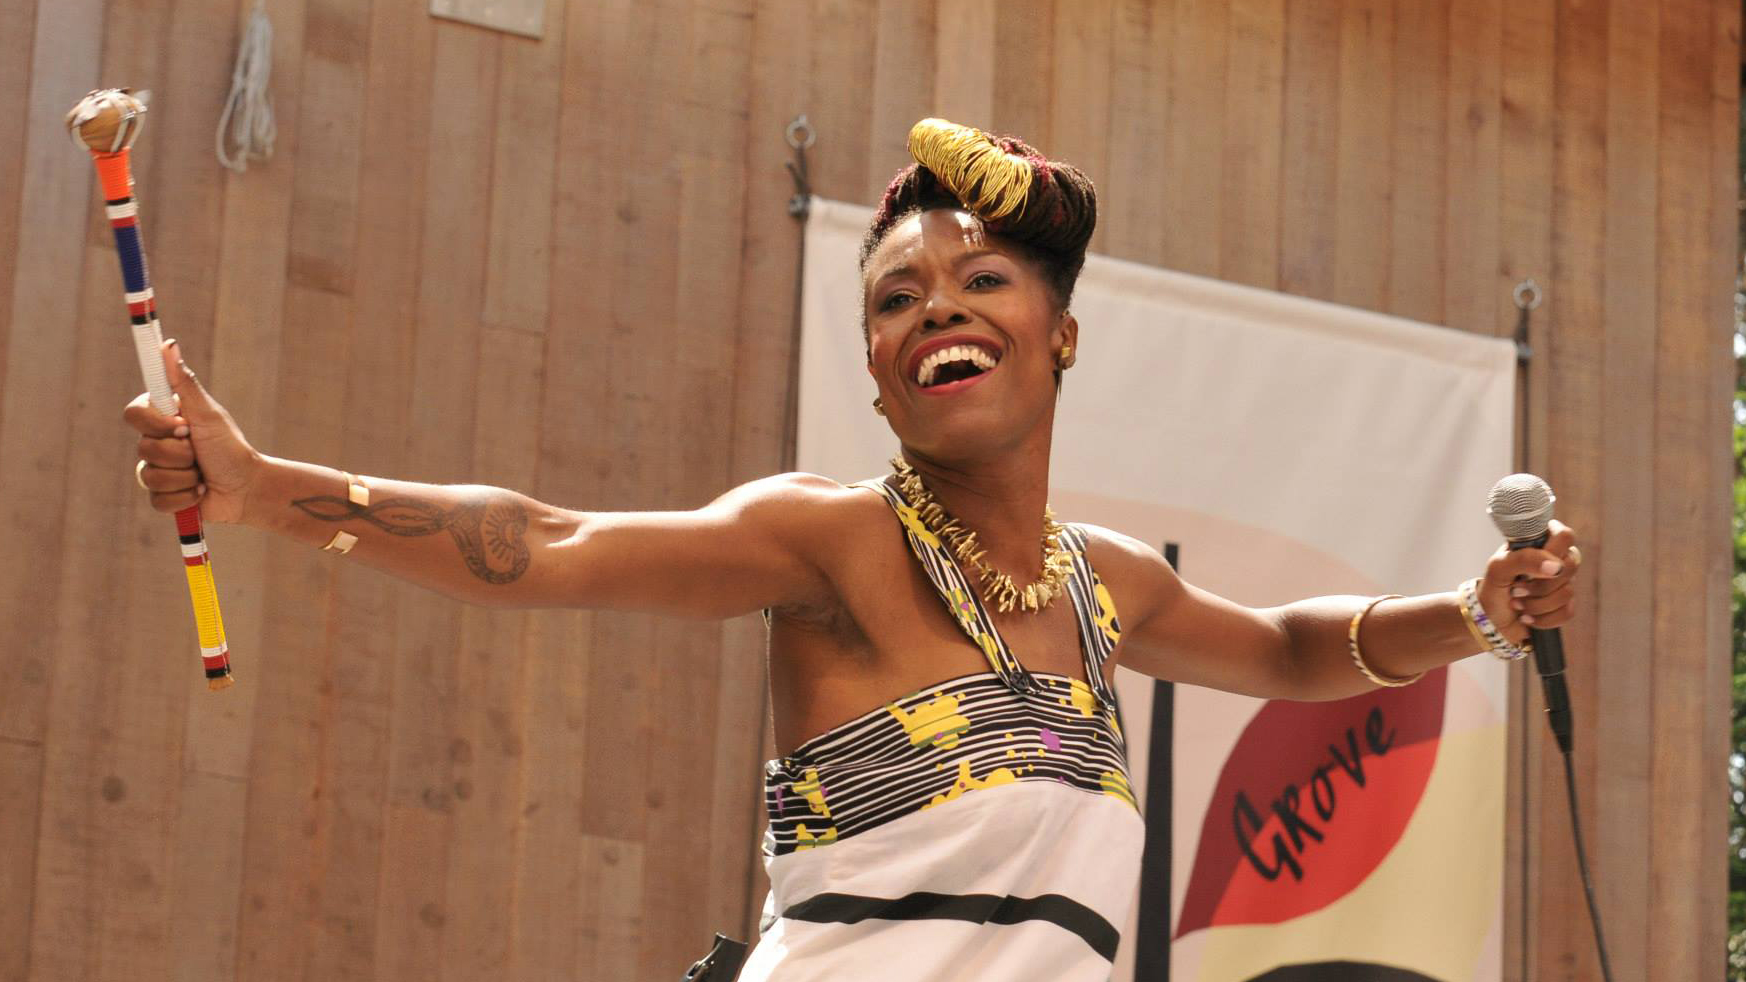 Zakiya Harris live at 2015 Stern Grove Festival